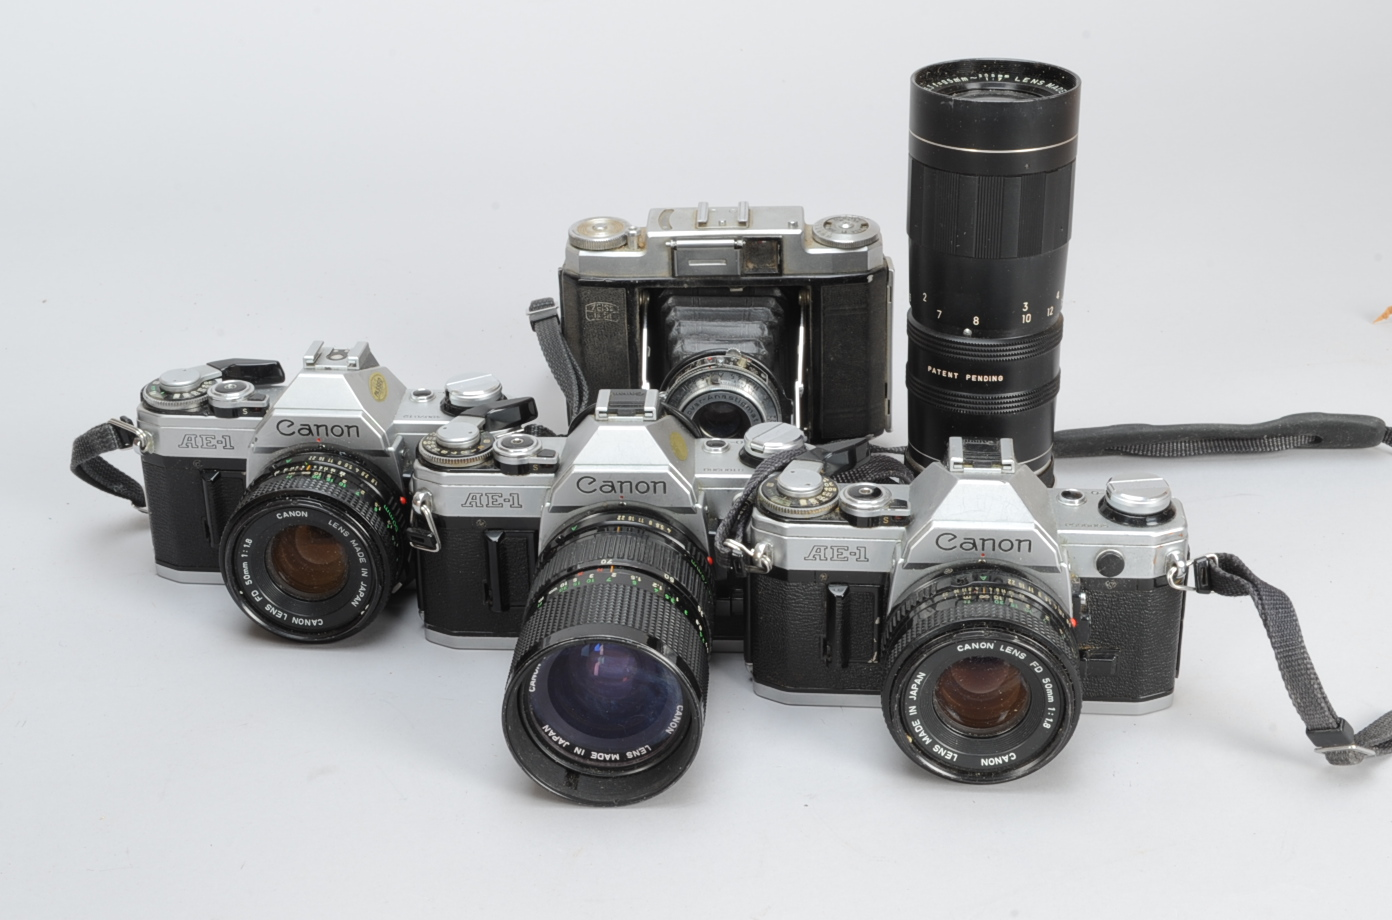 Lot 33 - Three Canon AE-1 SLR Cameras, serial no 3108368, shutter working, with an FD 35-70mm f/4 lens, no